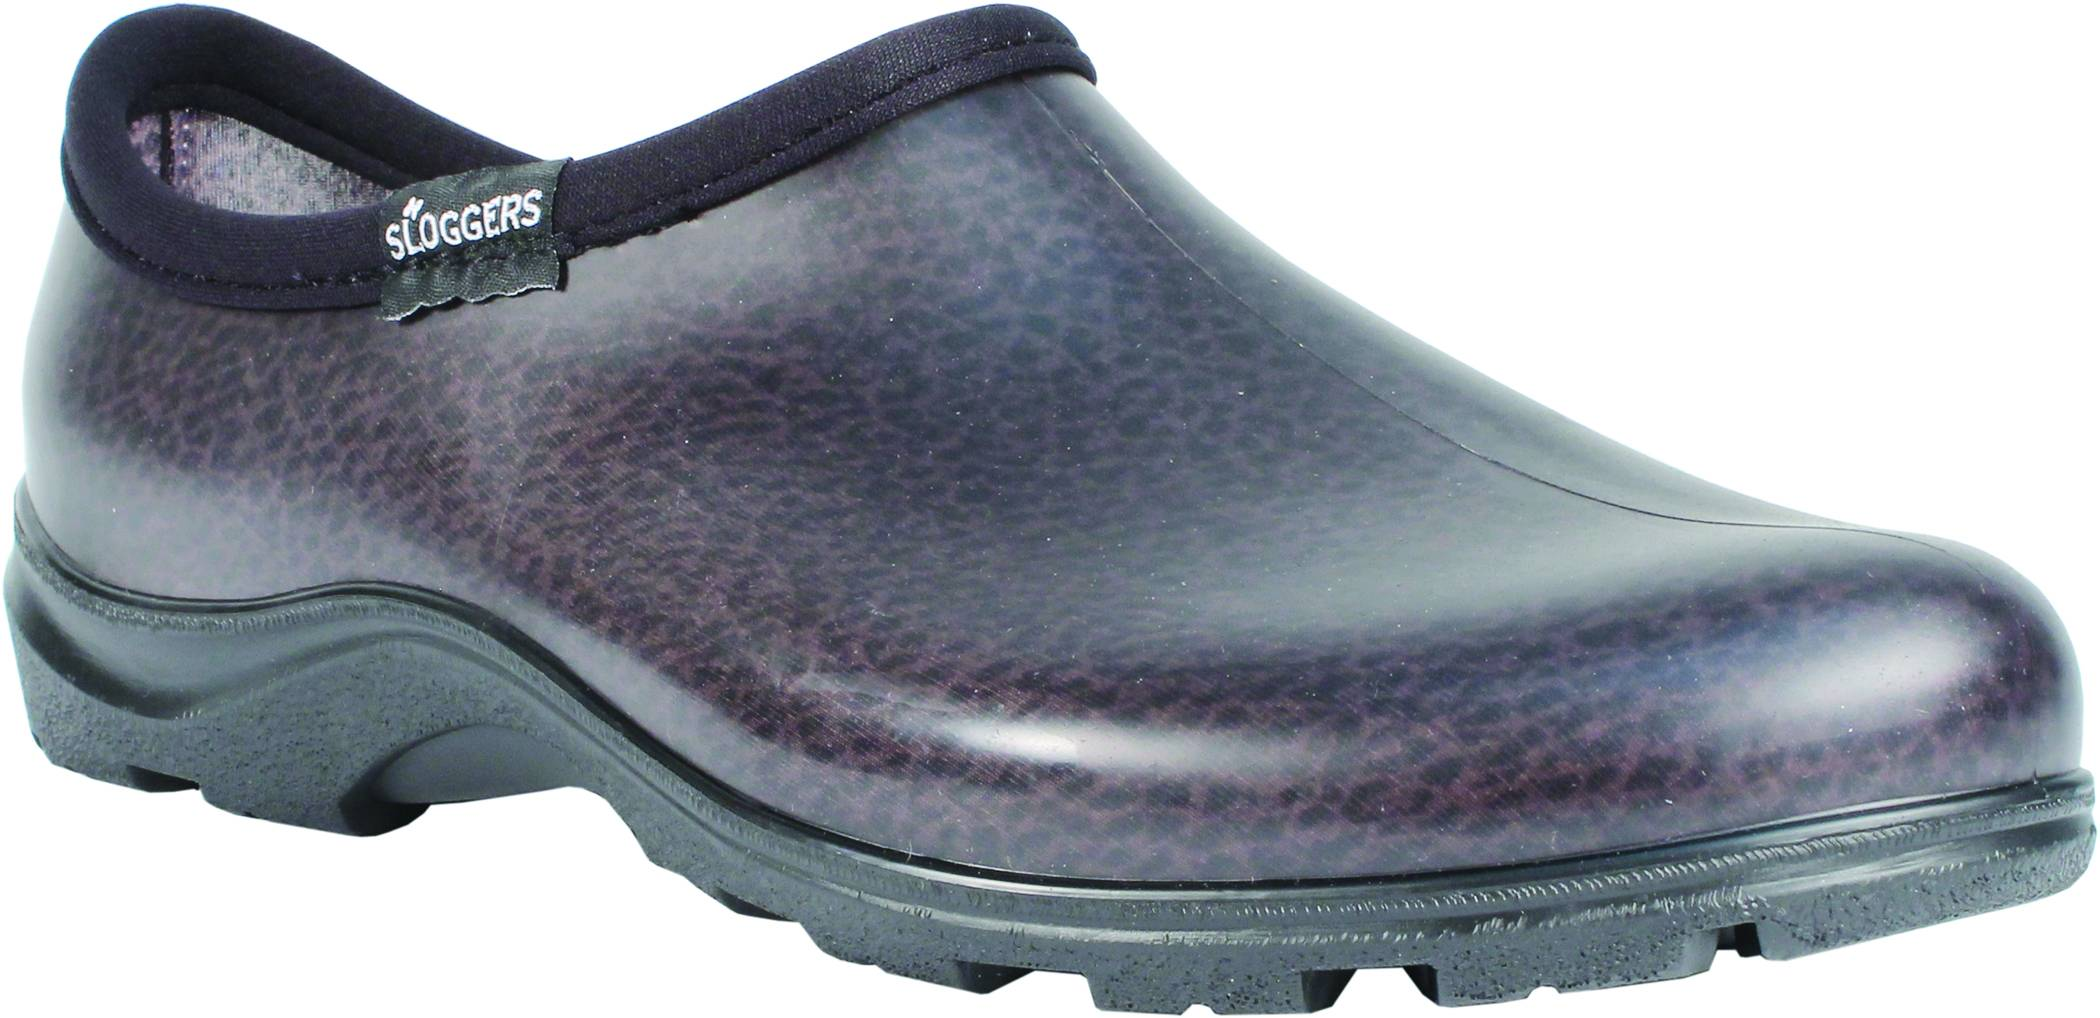 Sloggers Men's Garden Leather Garden Shoe